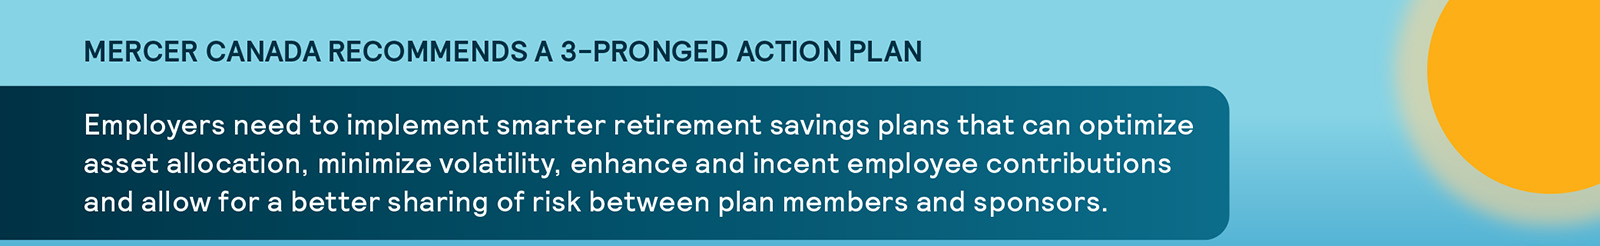 Mercer Canada Recommends a 3-Pronged Action Plan. Employers need to implement smarter retirement savings plans that can optimize asset allocation, minimize volatility, enhance and incent employee contributions and allow for a better sharing of risk between plan members and sponsors.